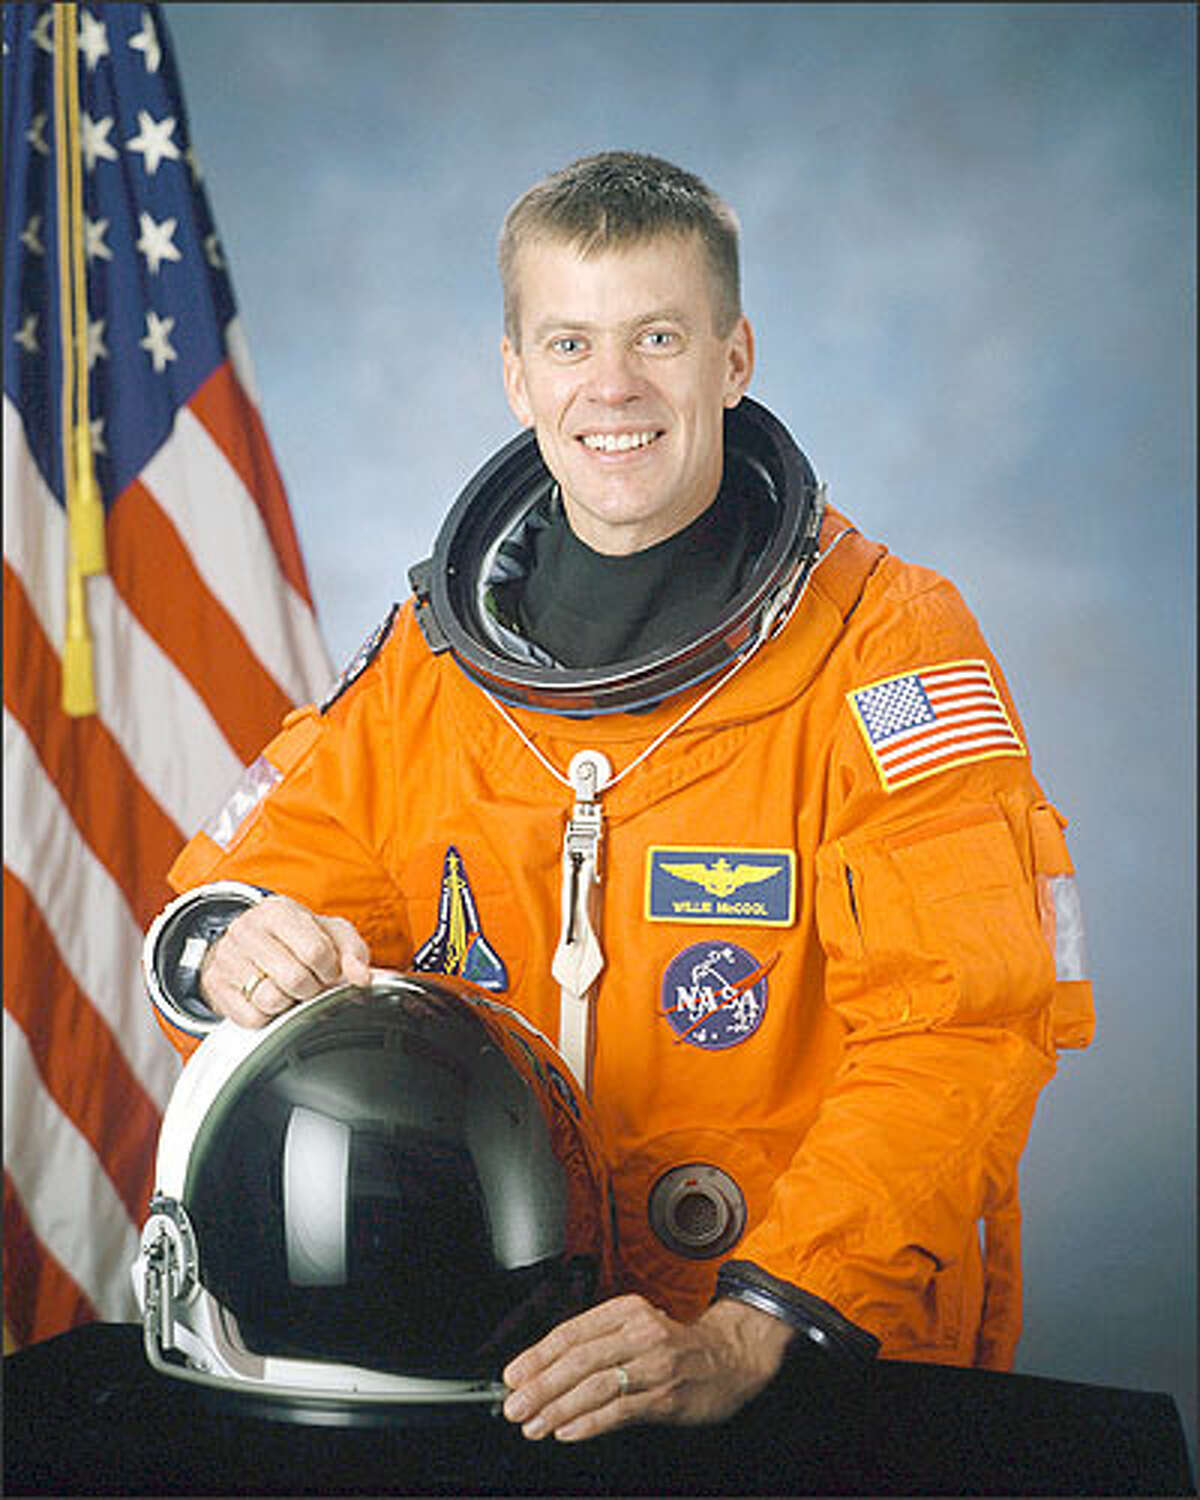 Pilot William C. McCool, 41, Navy commander from Lubbock, Texas, and father of three sons, who was one of the seven astronauts on the space shuttle Columbia, is seen in this undated handout photo from NASA. Space shuttle Columbia broke apart in flames over Texas on Saturday, Feb. 1, 2003, killing all seven astronauts just 16 minutes before they were supposed to glide to ground in Florida.